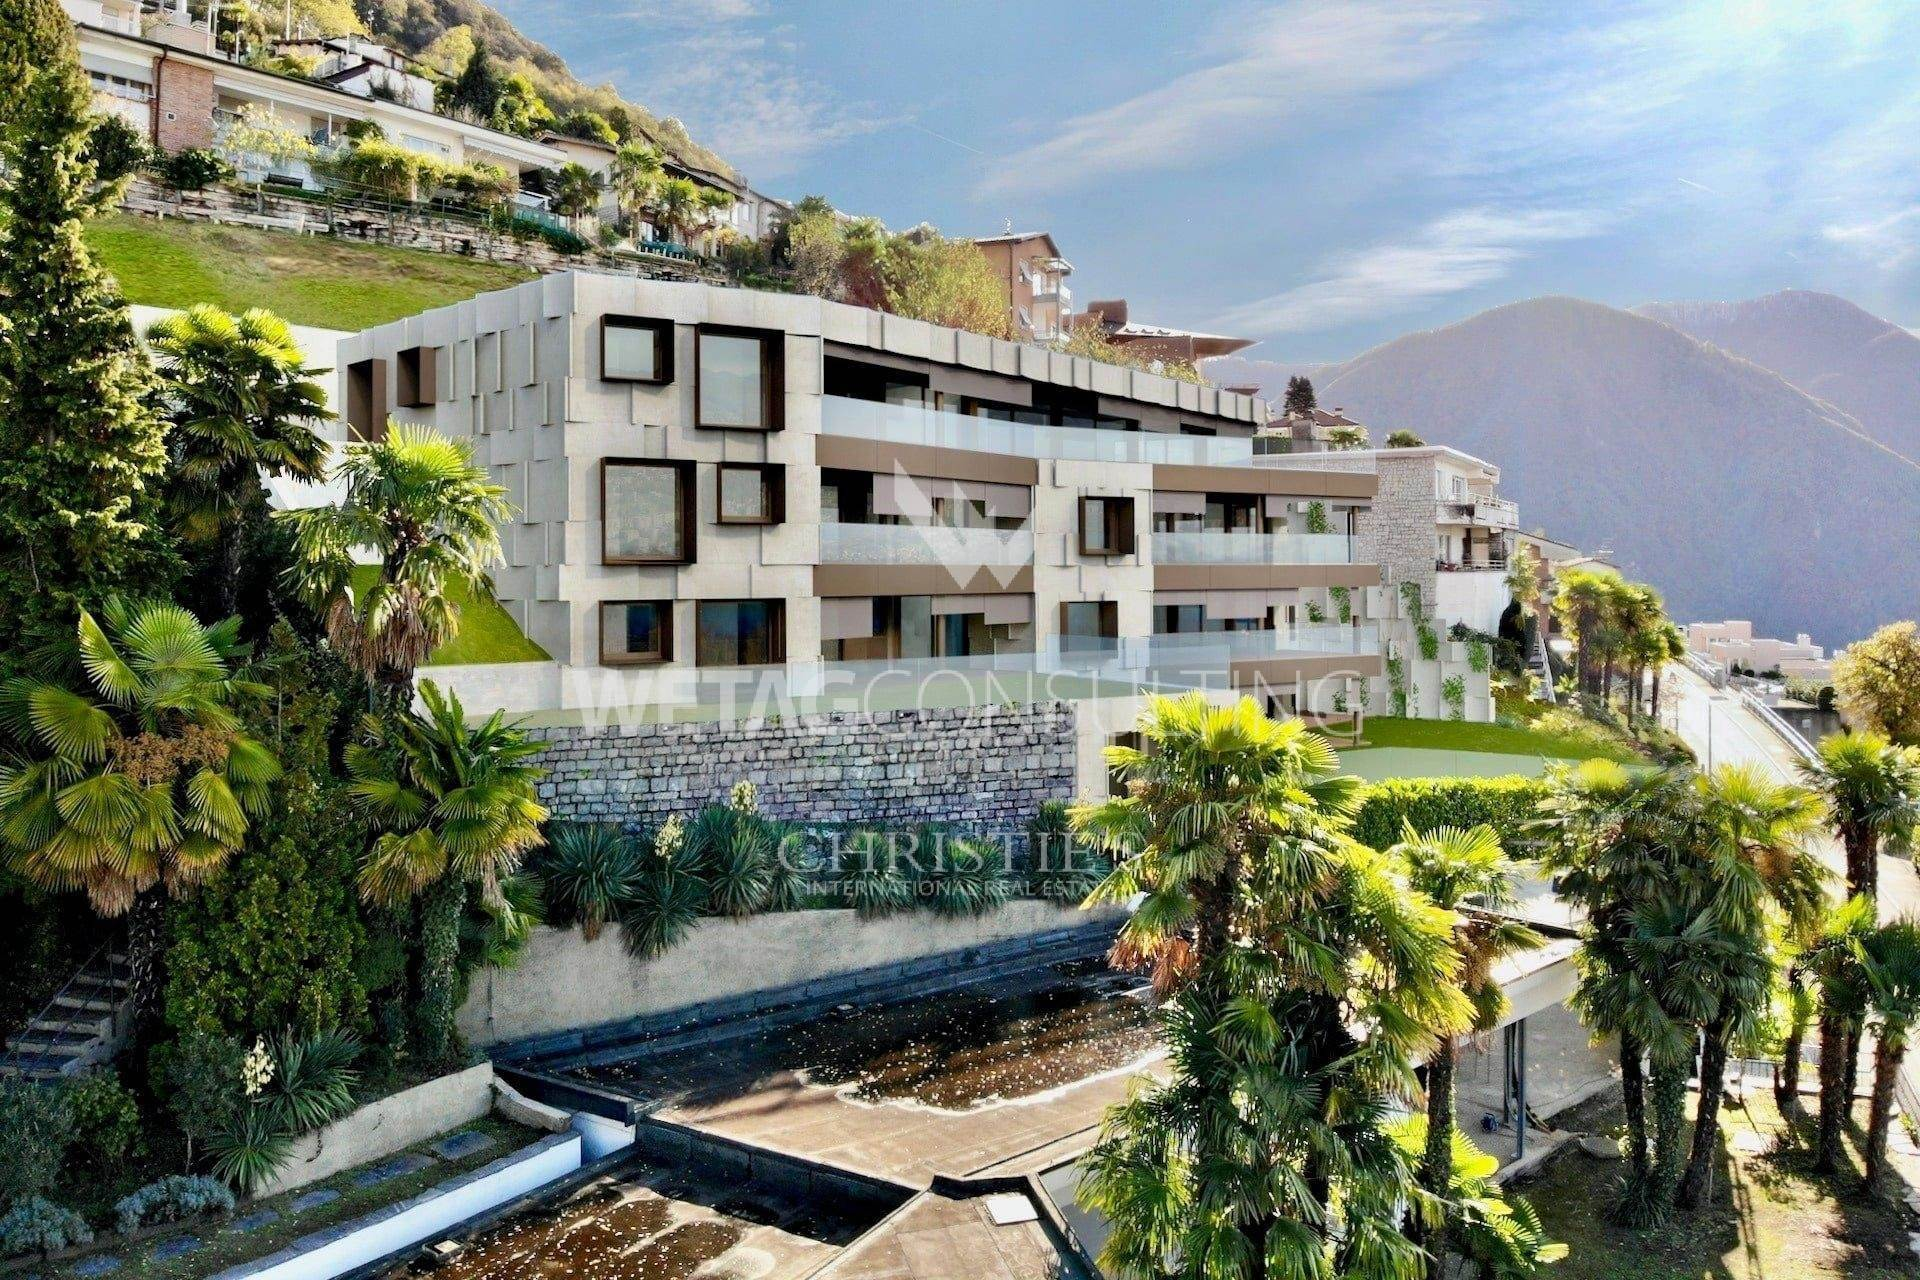 公寓 為 出售 在 New 3-bedrooms apartment for sale with garden & Lake Lugano view Aldesago, 提契诺,6974 瑞士